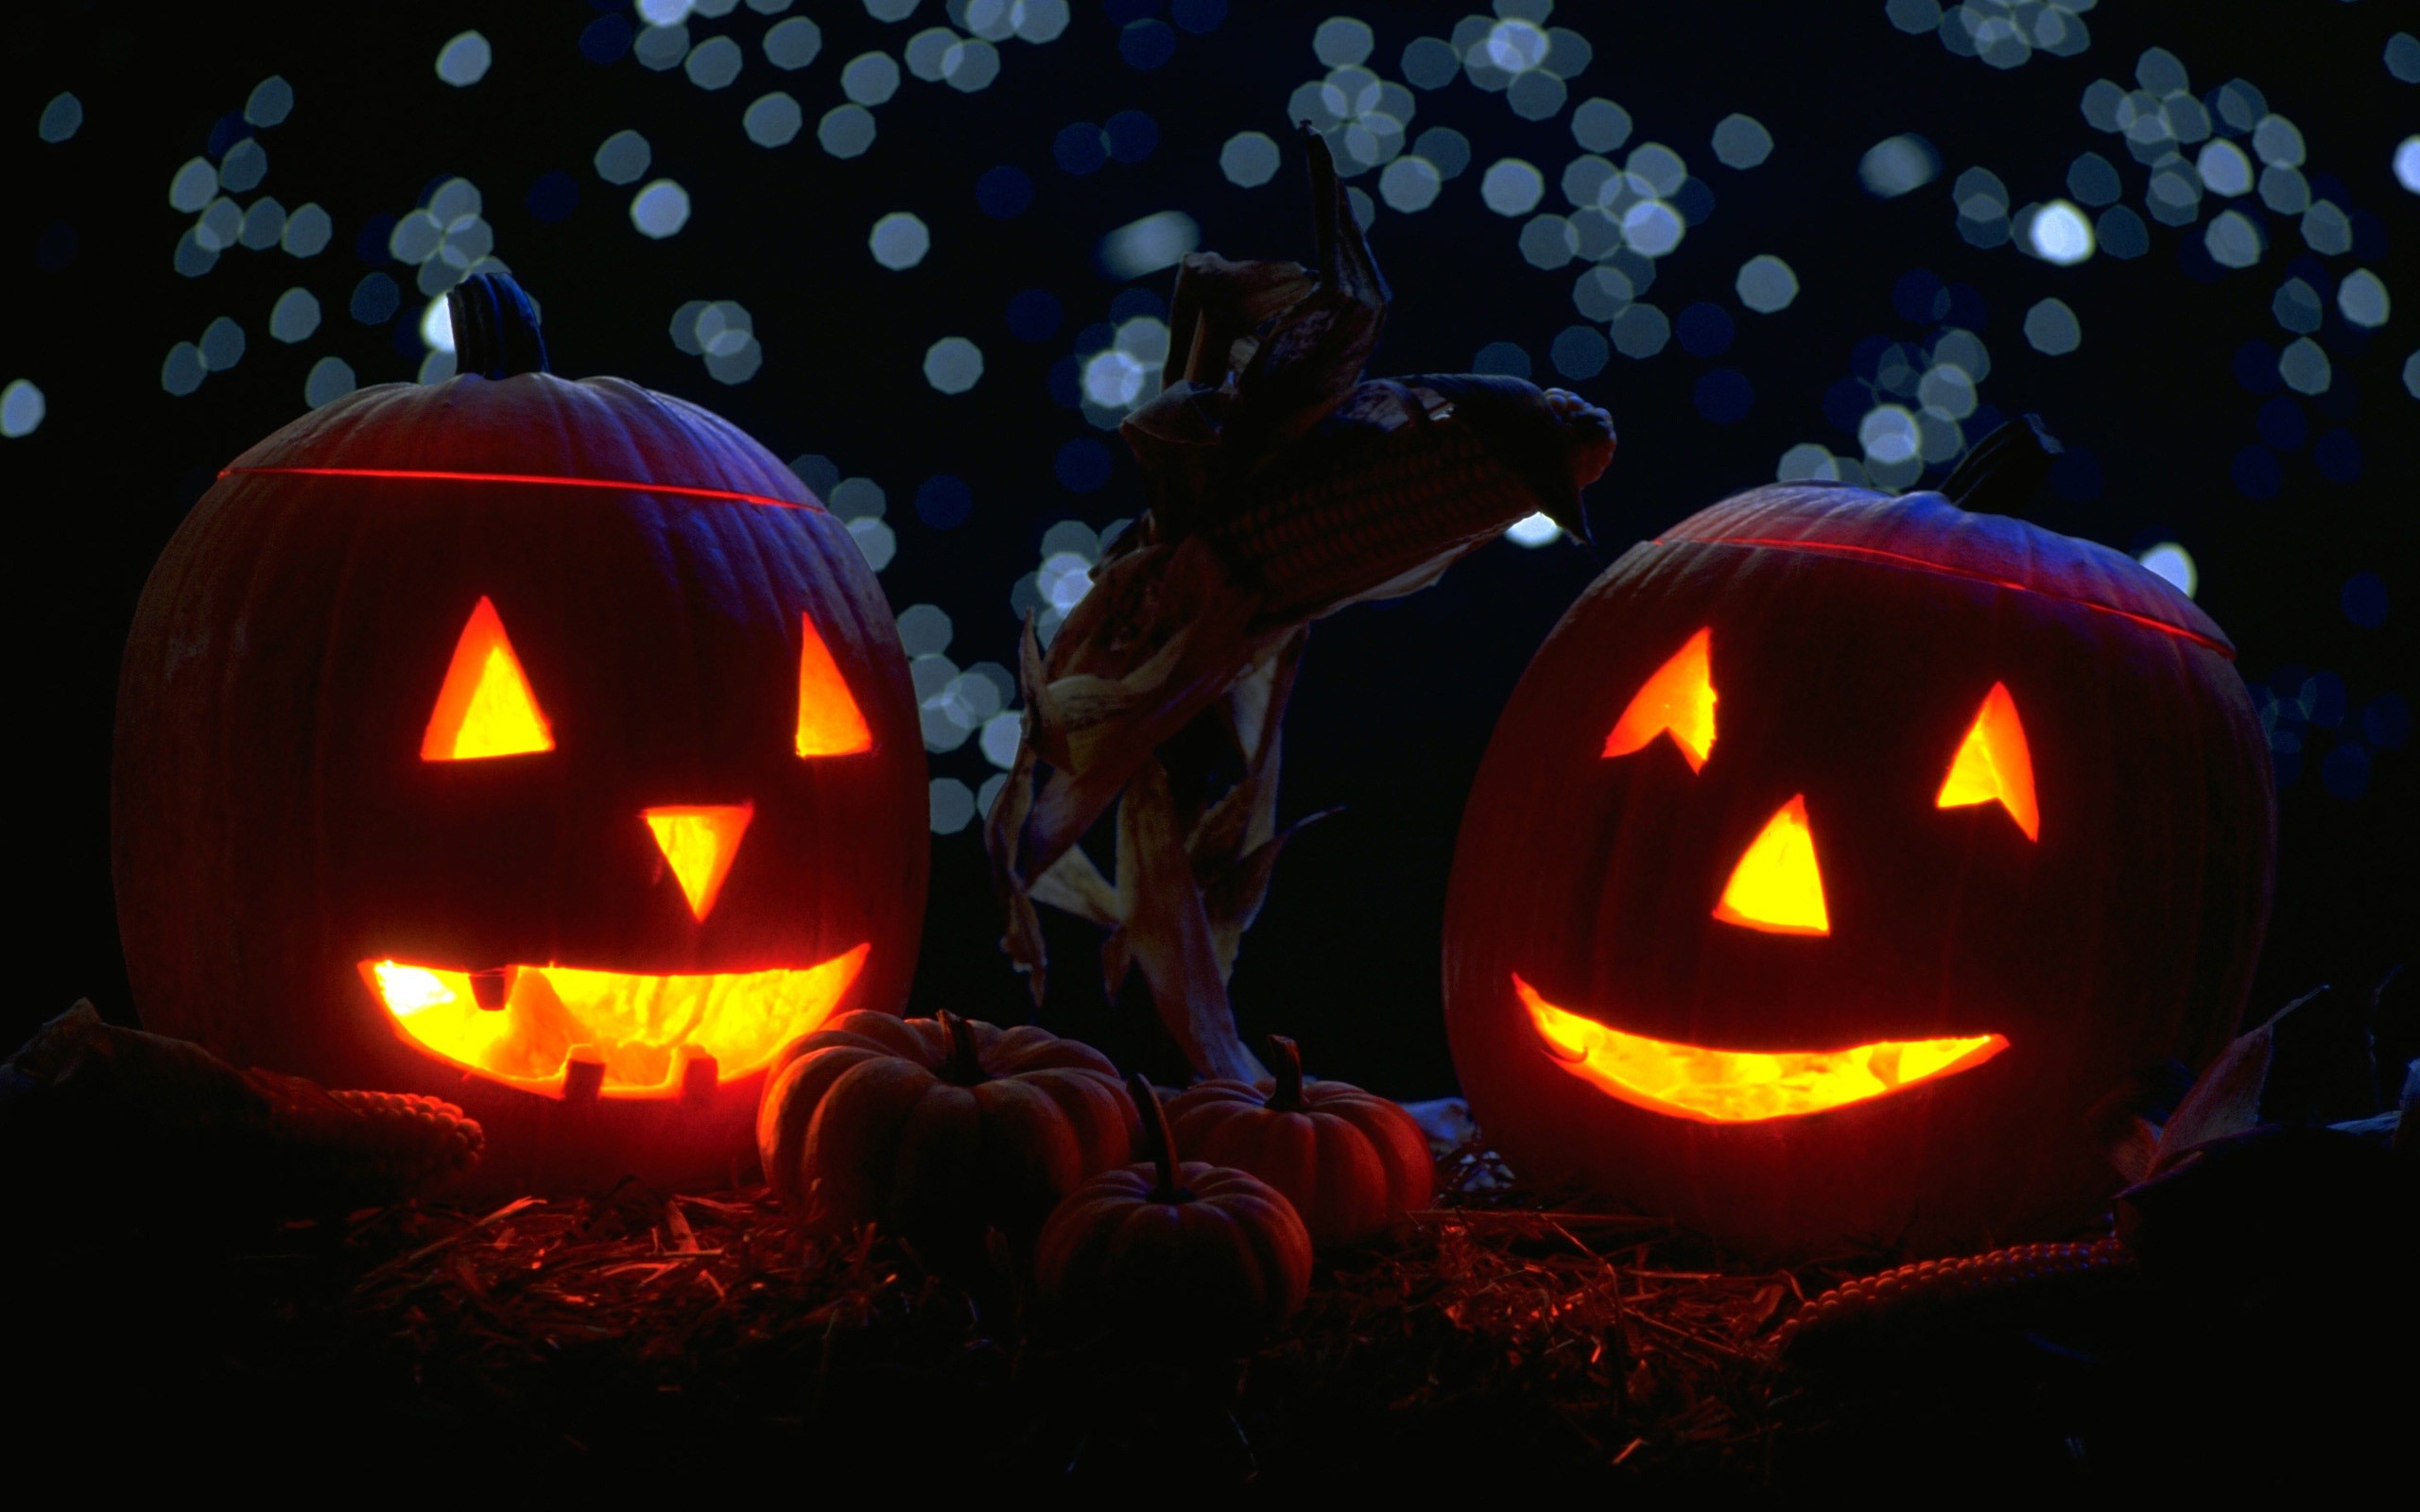 2560x1600 Pumpkins-with-candles-in-the-night-Halloween-Widescreen-